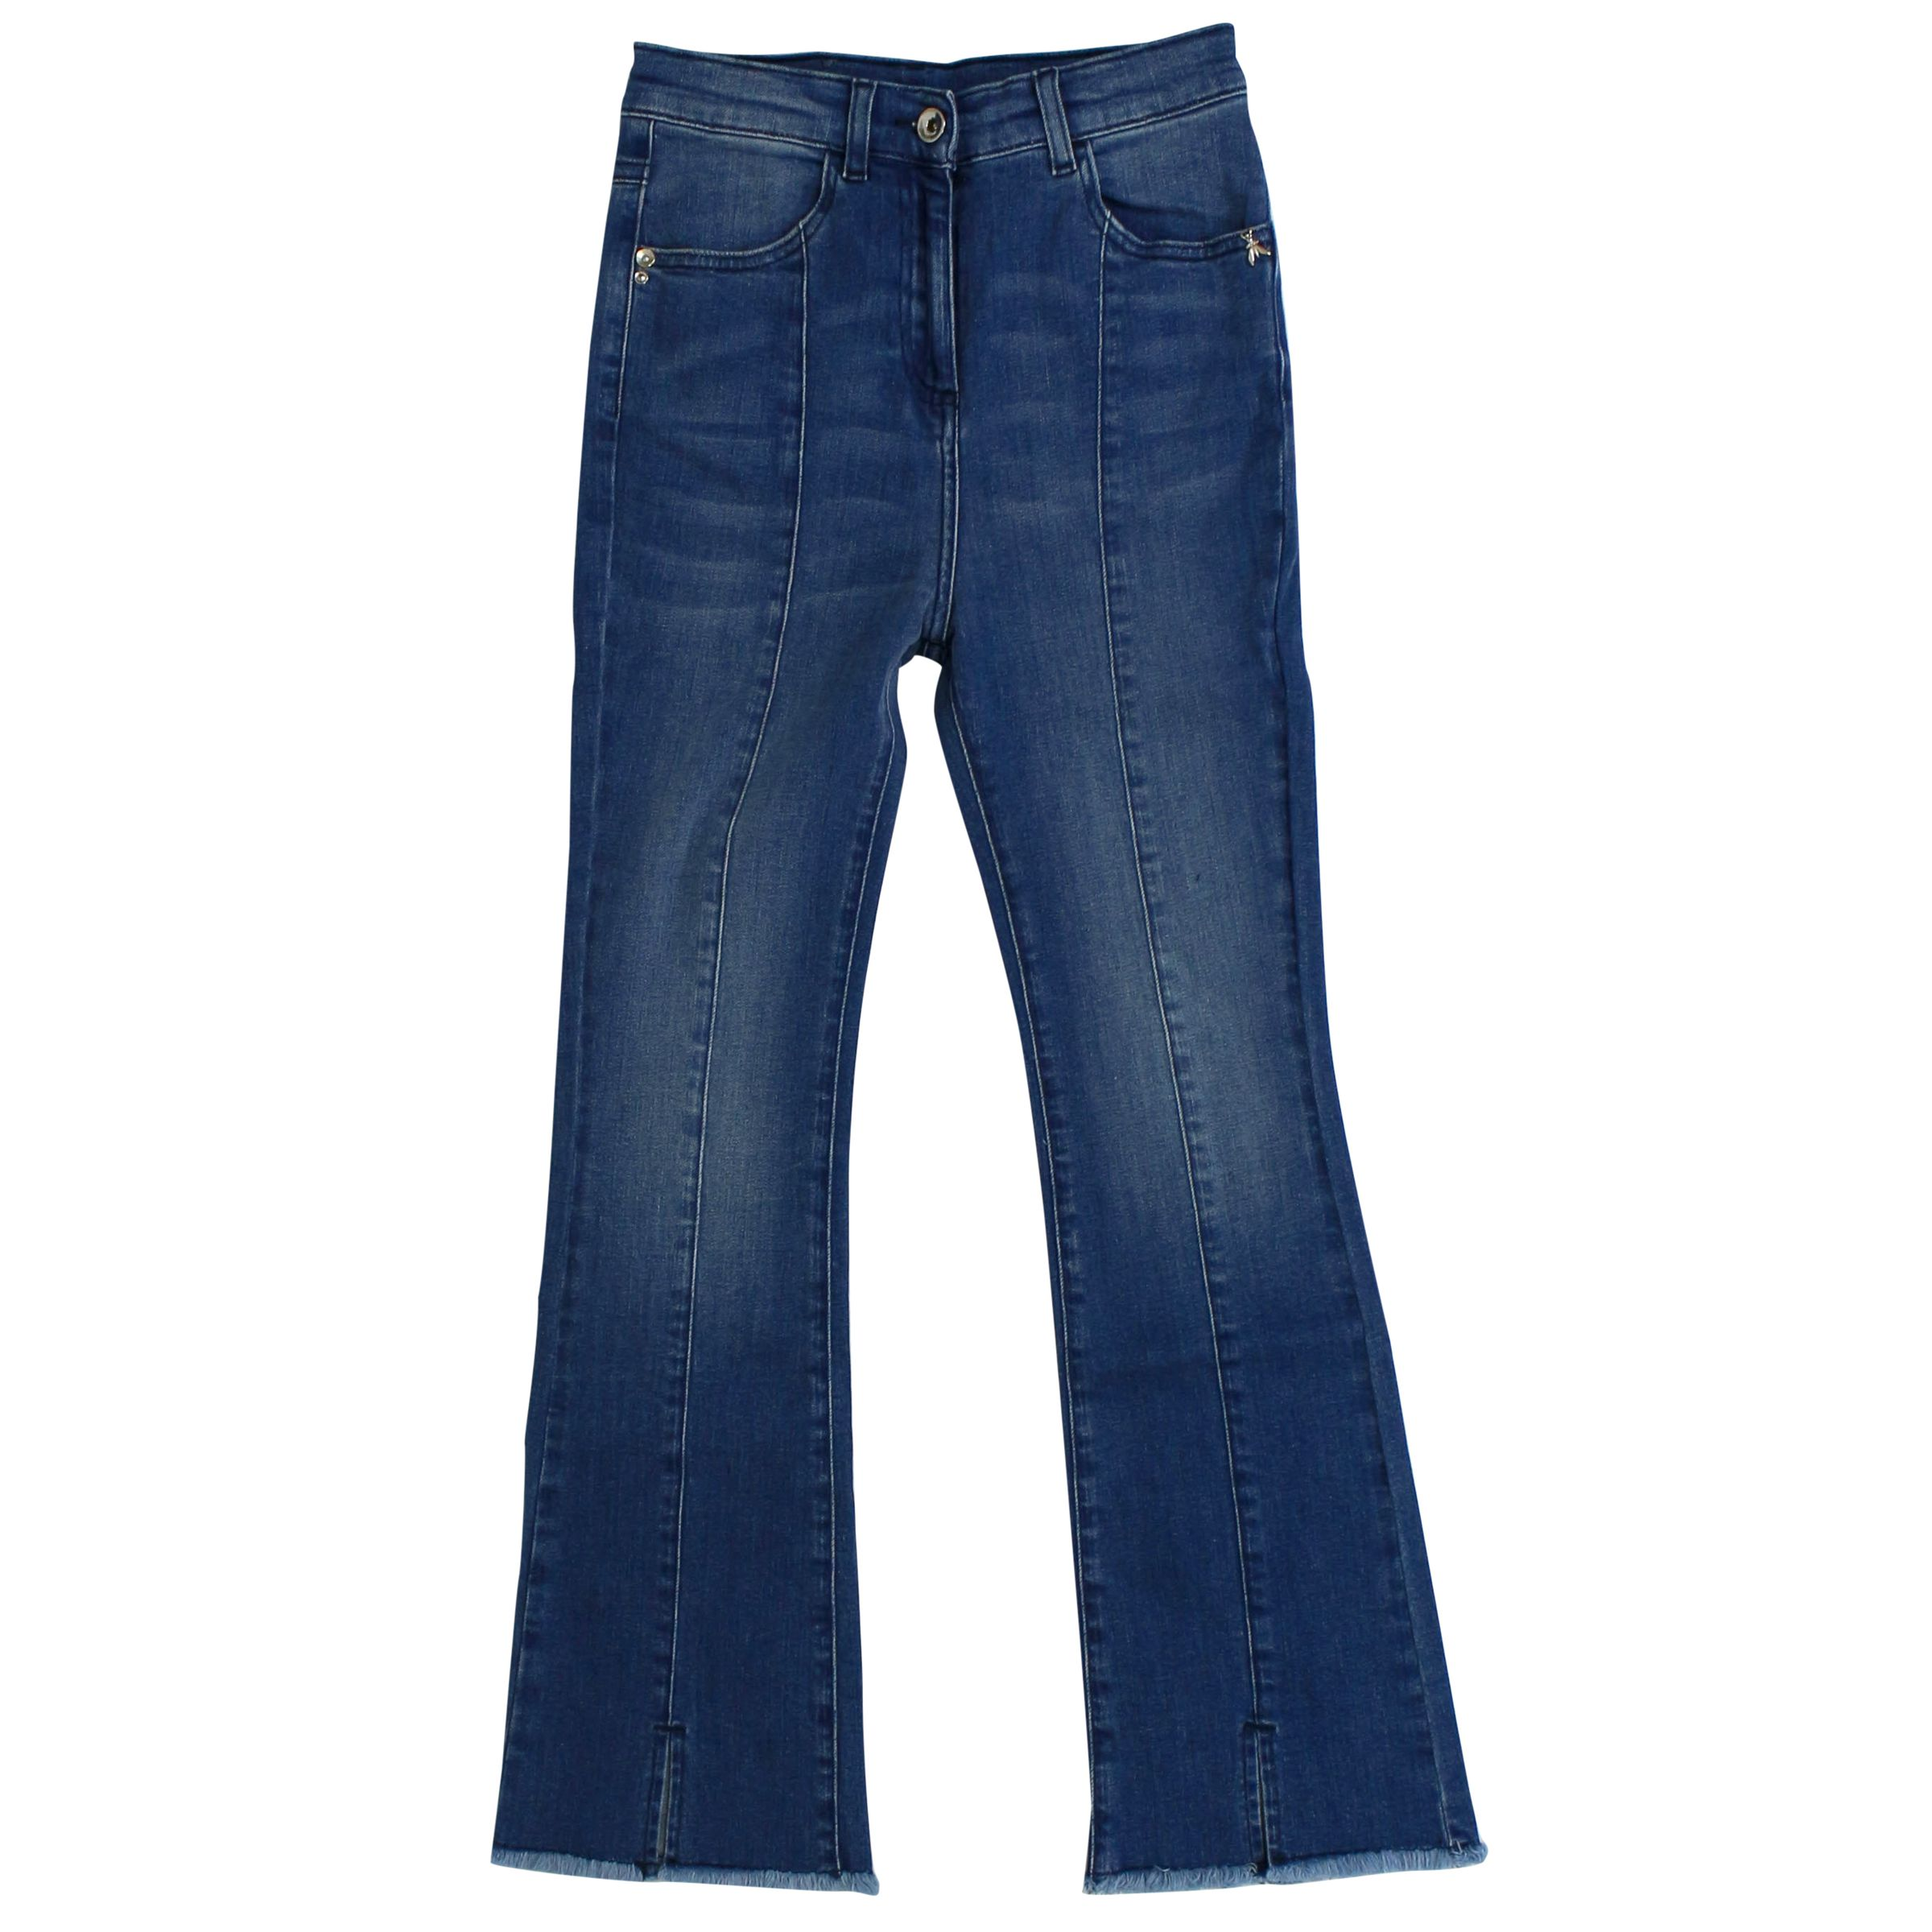 buy online 91e02 e9b63 Bell-shaped stretch jeans with fringed bottom